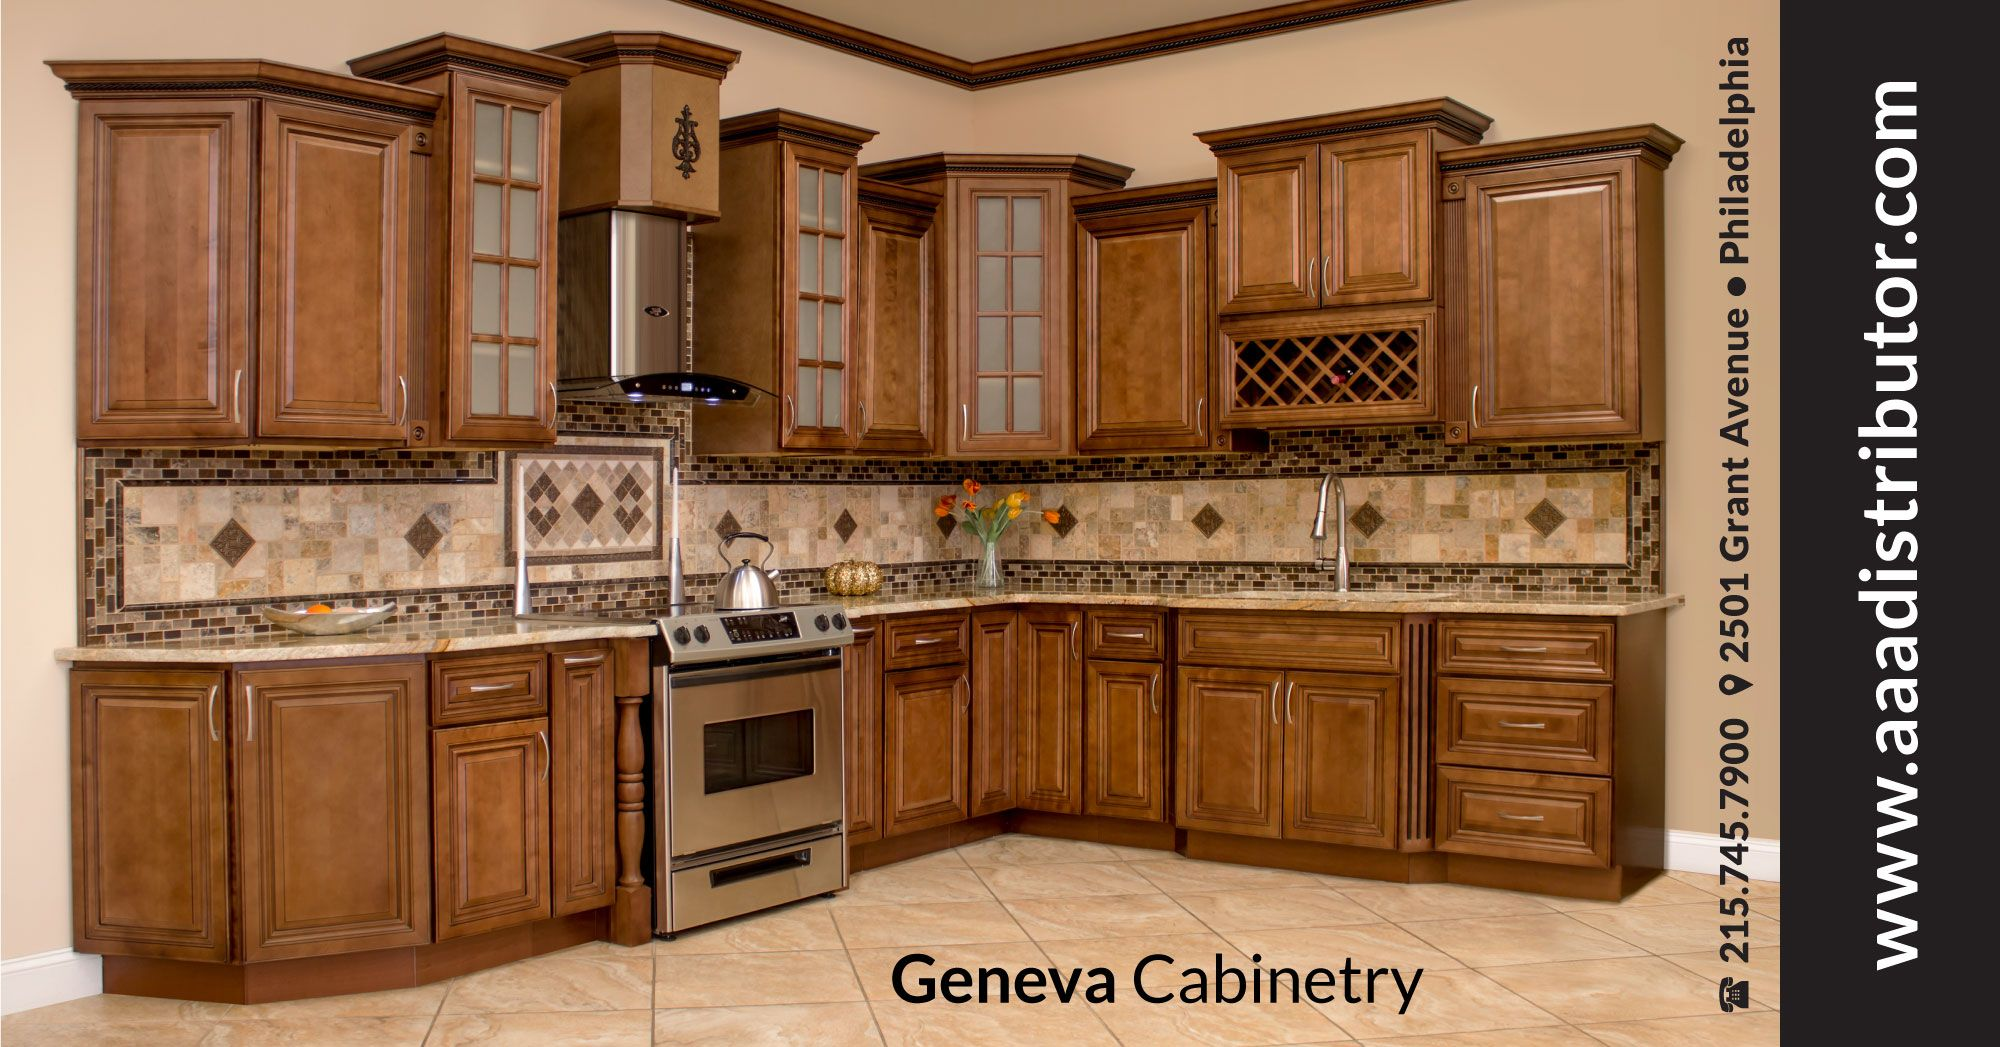 All Cabinets Come With Smooth Close Hinges Customize And Order Your Kitchen Today Solid Wood Kitchen Cabinets Wood Kitchen Cabinets Online Kitchen Cabinets